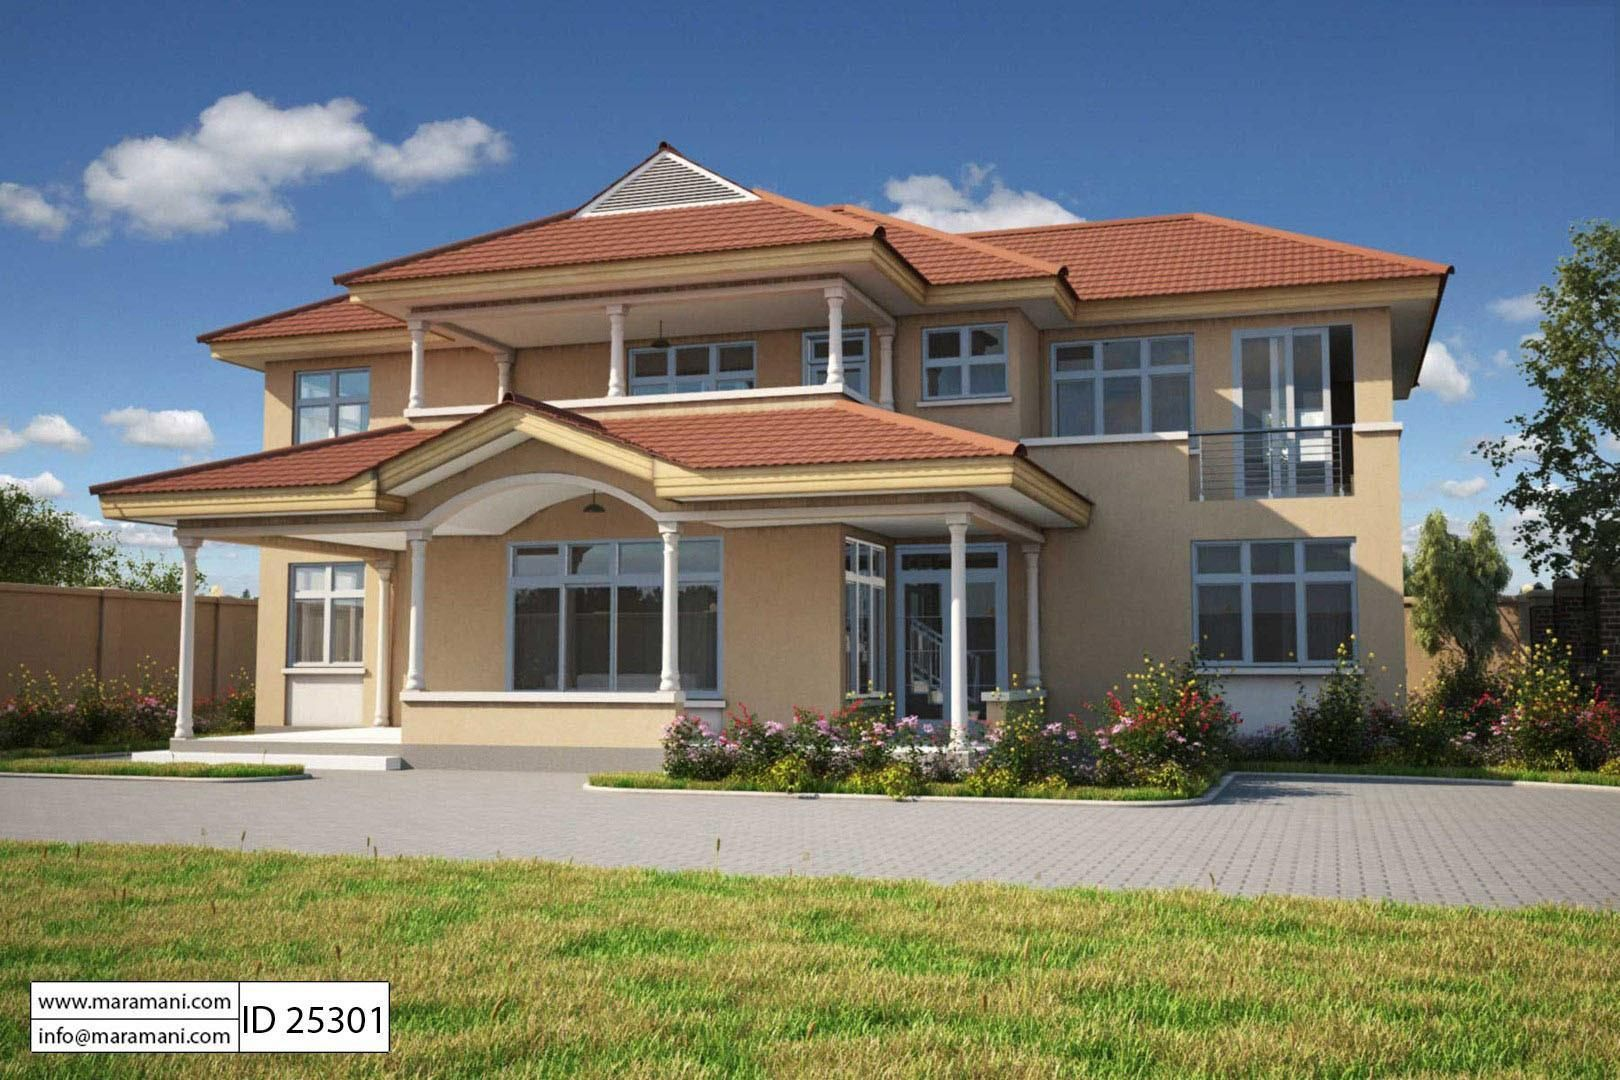 35554a94c103db8f515a37a96763b66b - 39+ Small 2 Bedroom House Plans And Designs In Kenya Background